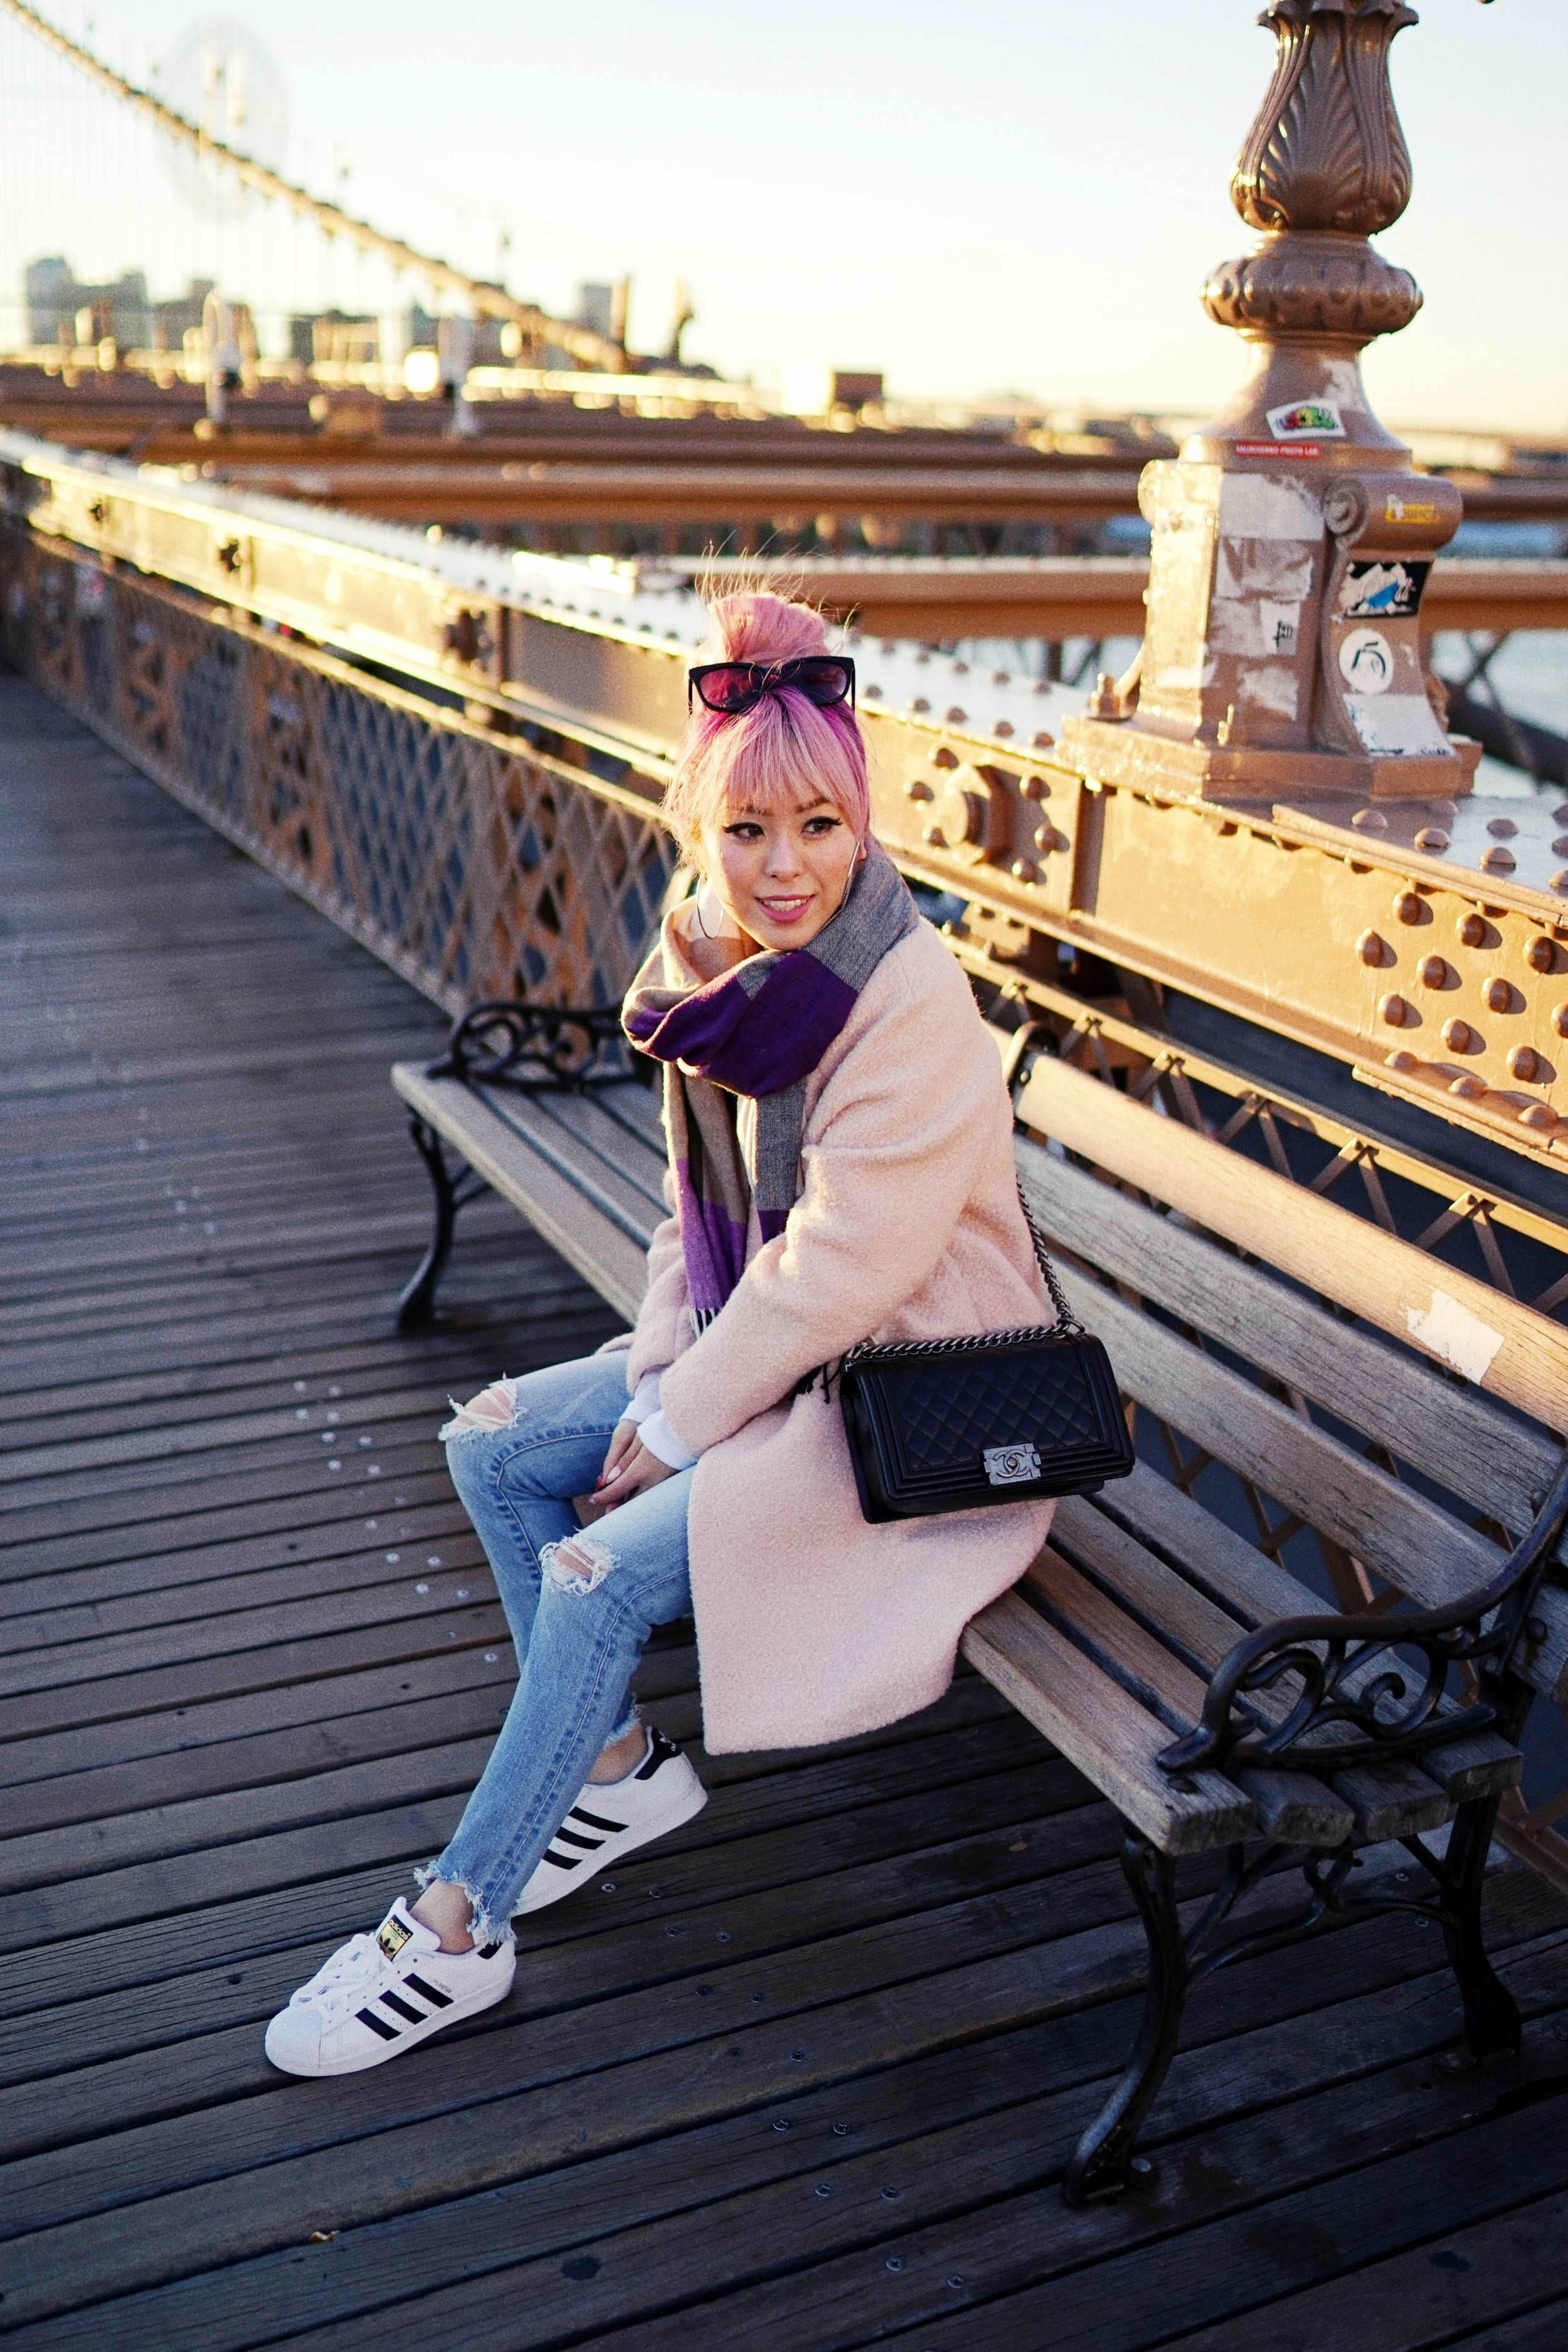 GAP Scarf-Zara pink coat-MOUSSY- frayed hem jeans- CHANEL Lambskin Quilted Medium Boy Flap Black-Adidas Superstar Shoes-Urban Outfitters Sunglasses-Aika's Love Closet-Sealtle fashion style blogger from japan-pink hair-brooklyn bridge-new york-city 14